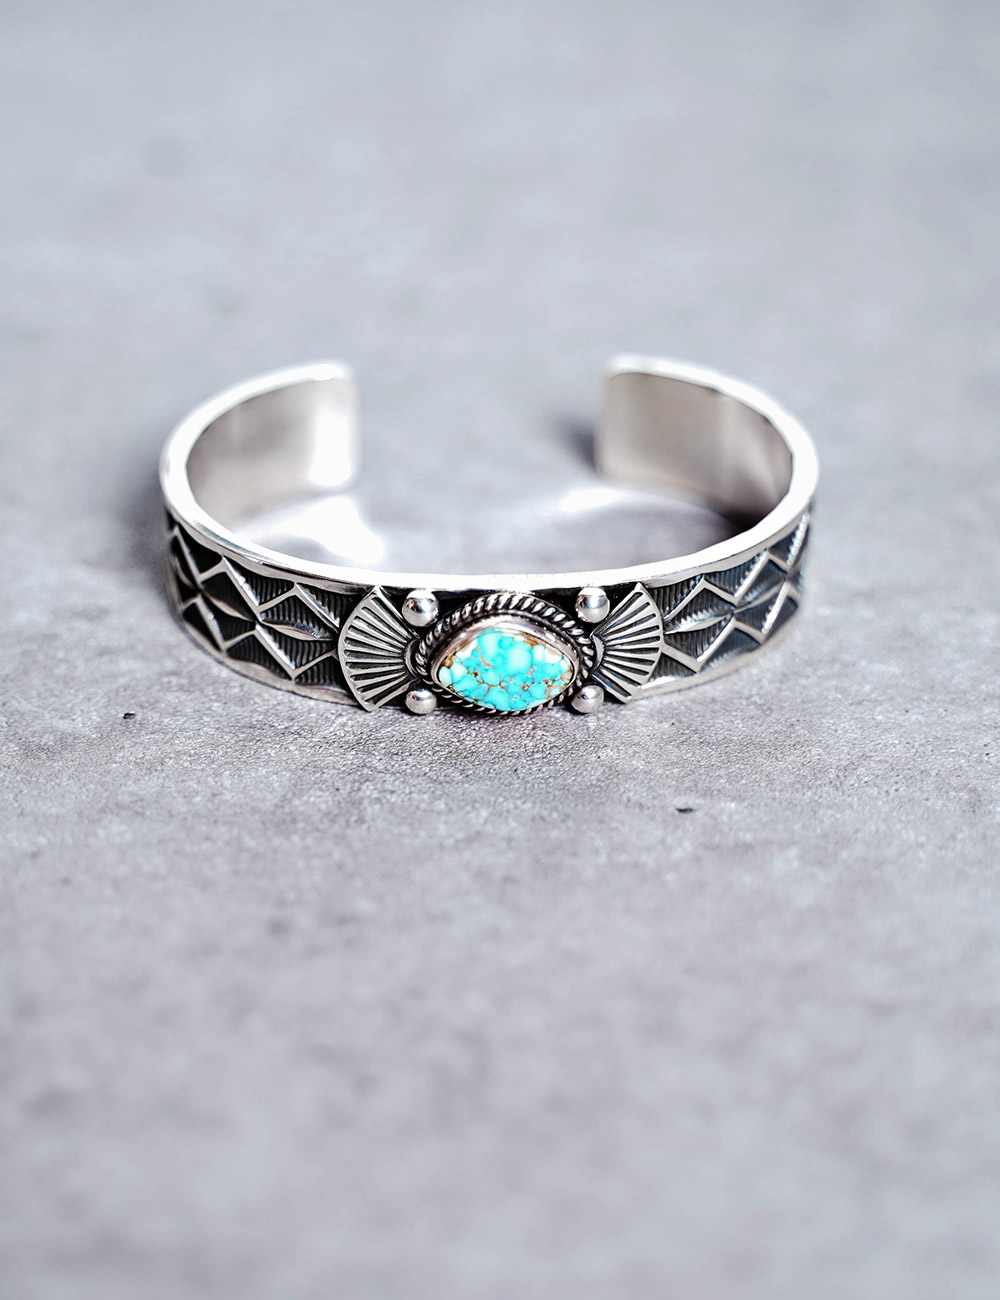 NATIVE AMERICAN JEWELRY : ANDY CADMAN - SILVER w/TURQUOISE BRACELET